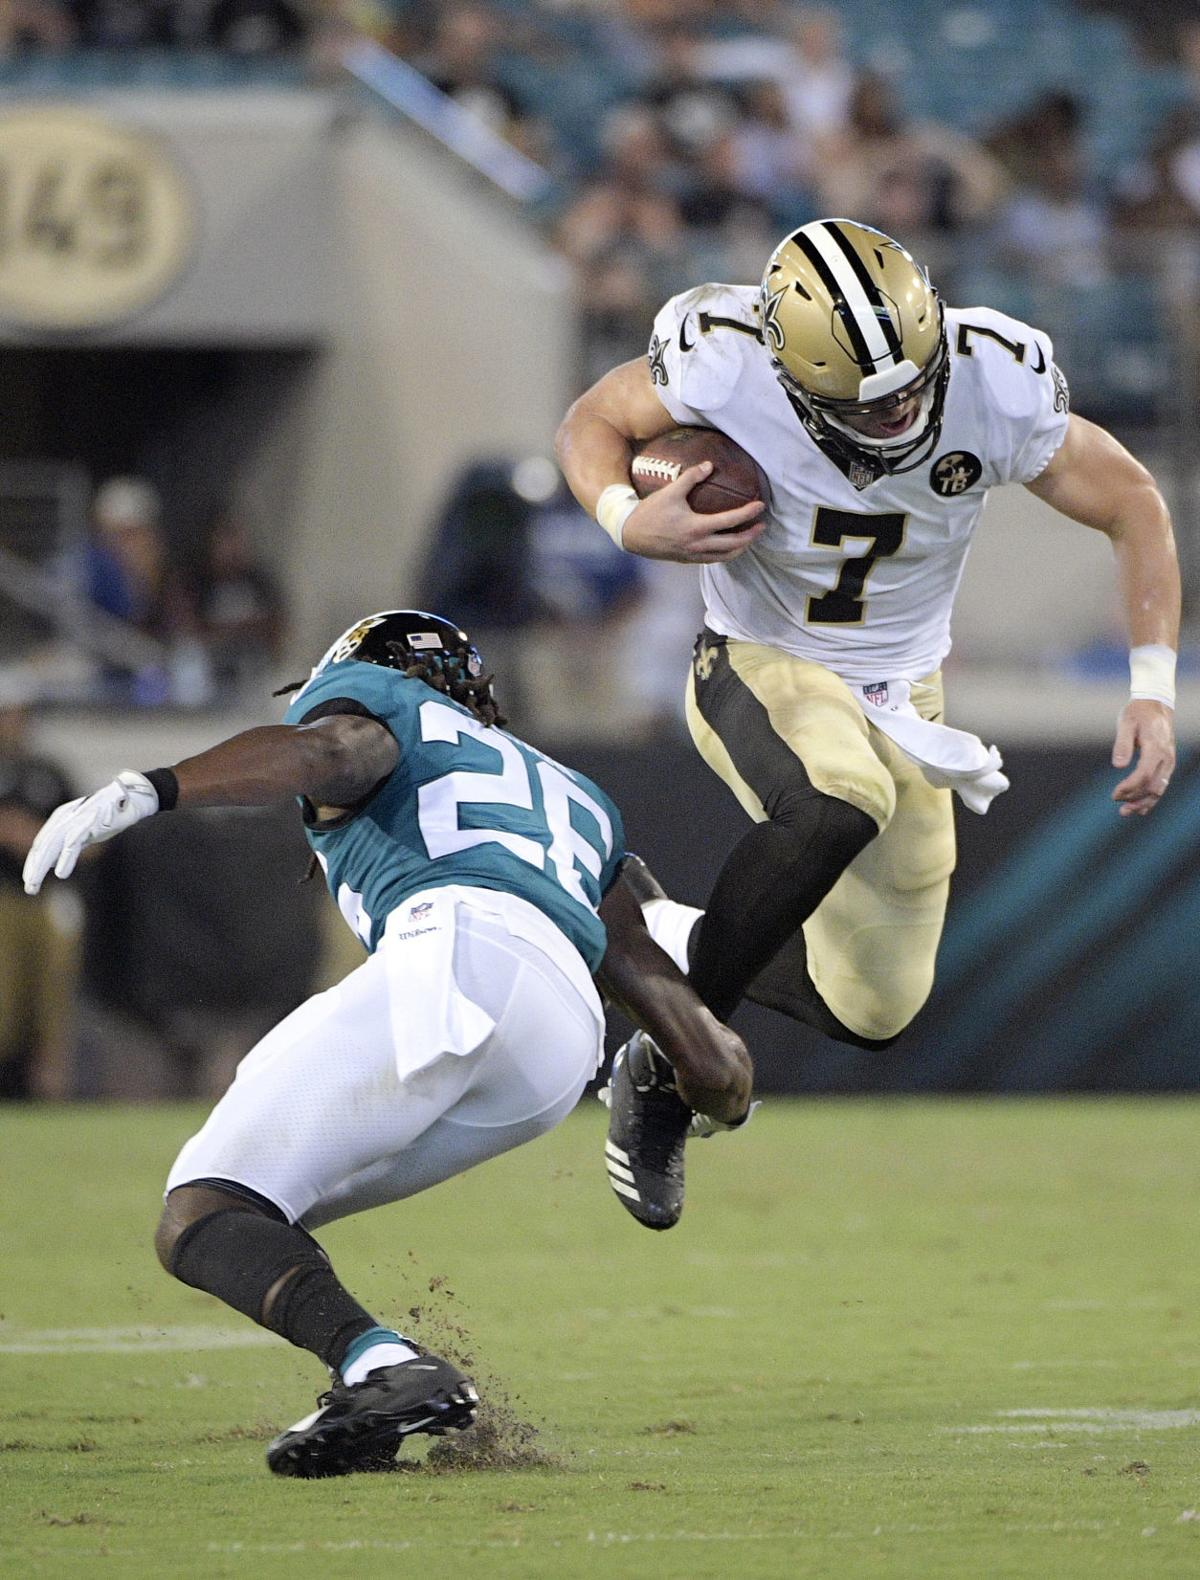 New Orleans Saints' Taysom Hill scores touchdown, shows ...Taysom Hill Kids